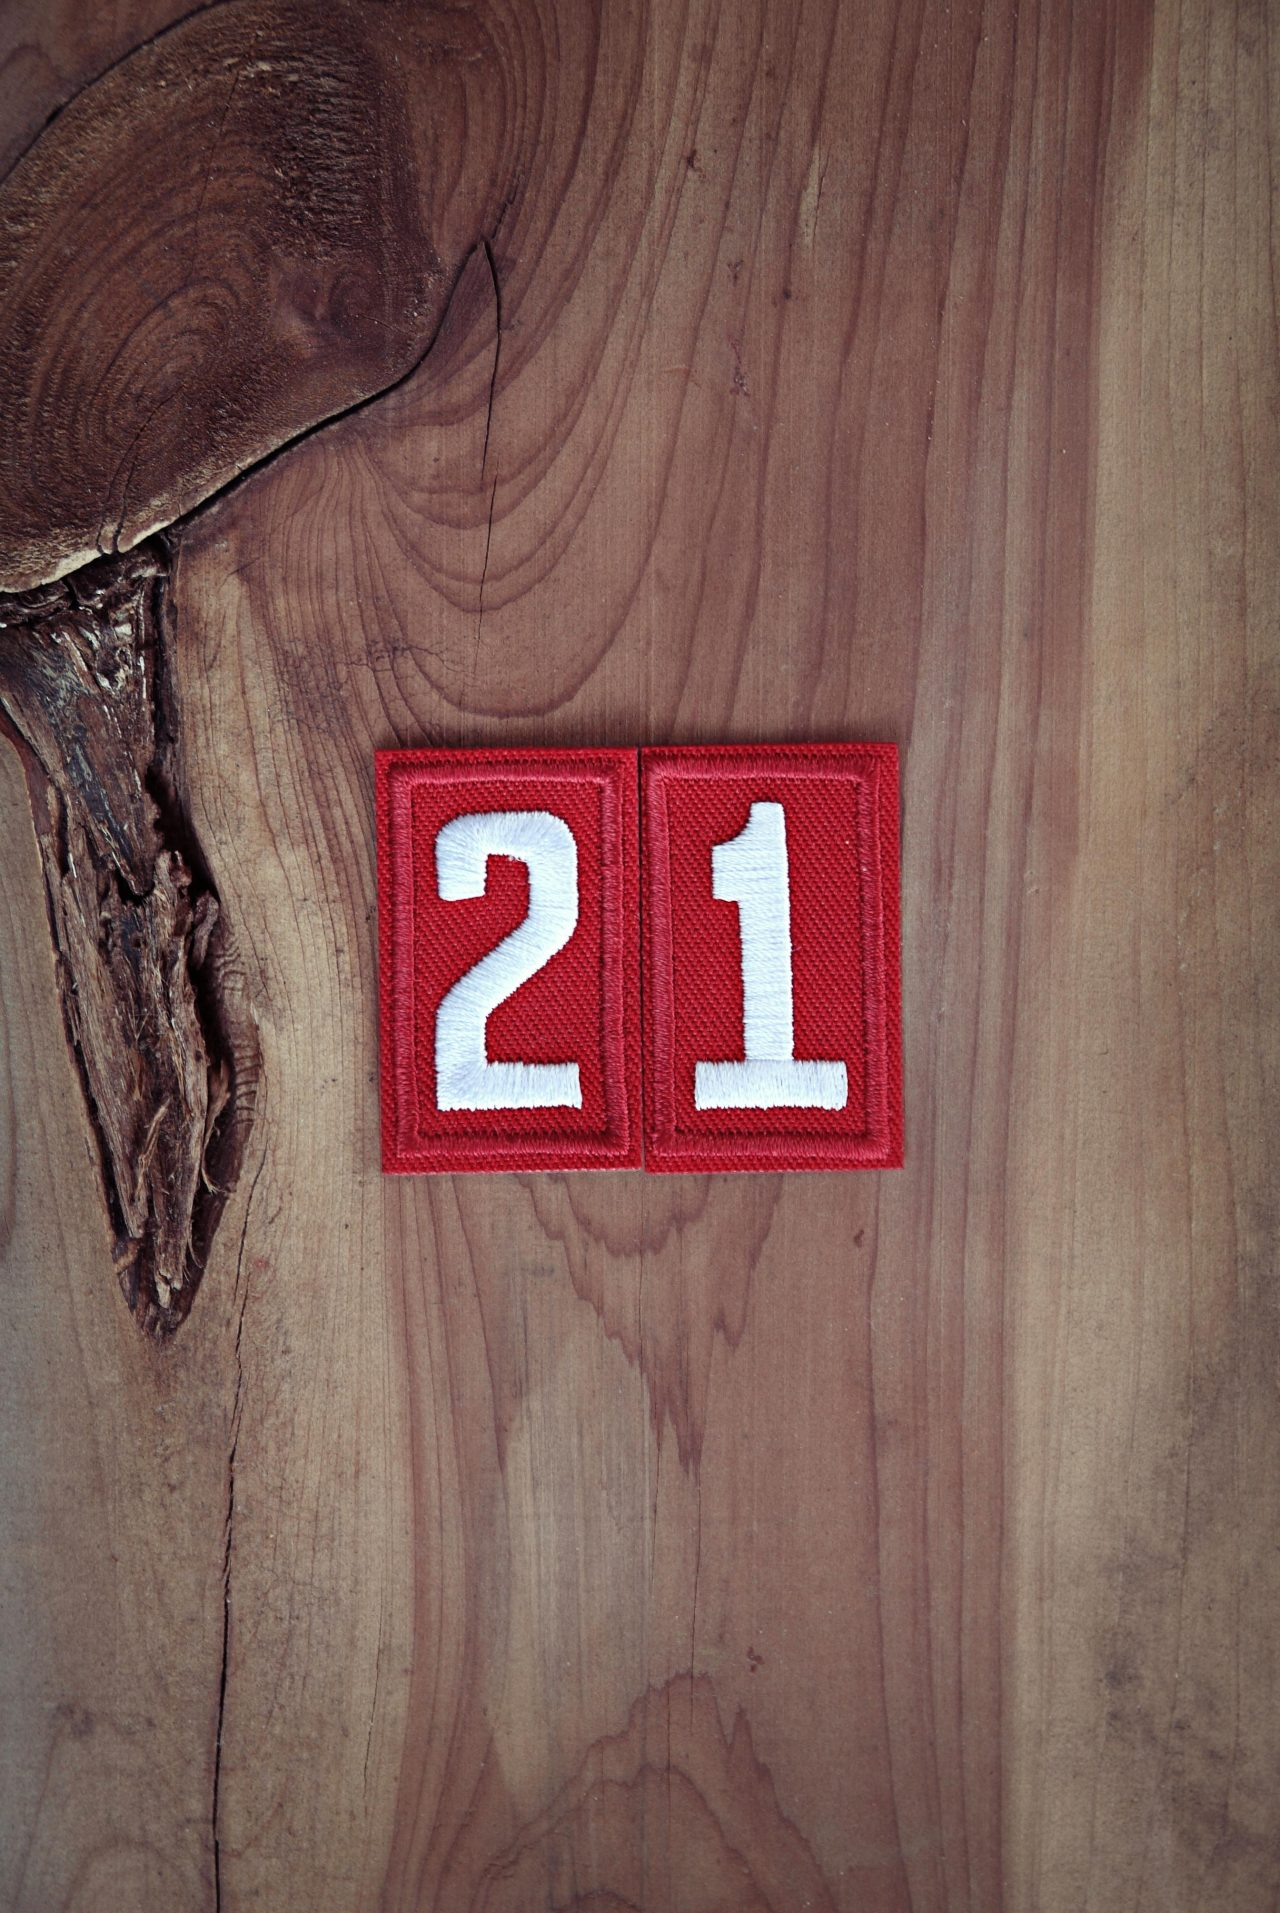 twenty-one: by Ian Norris